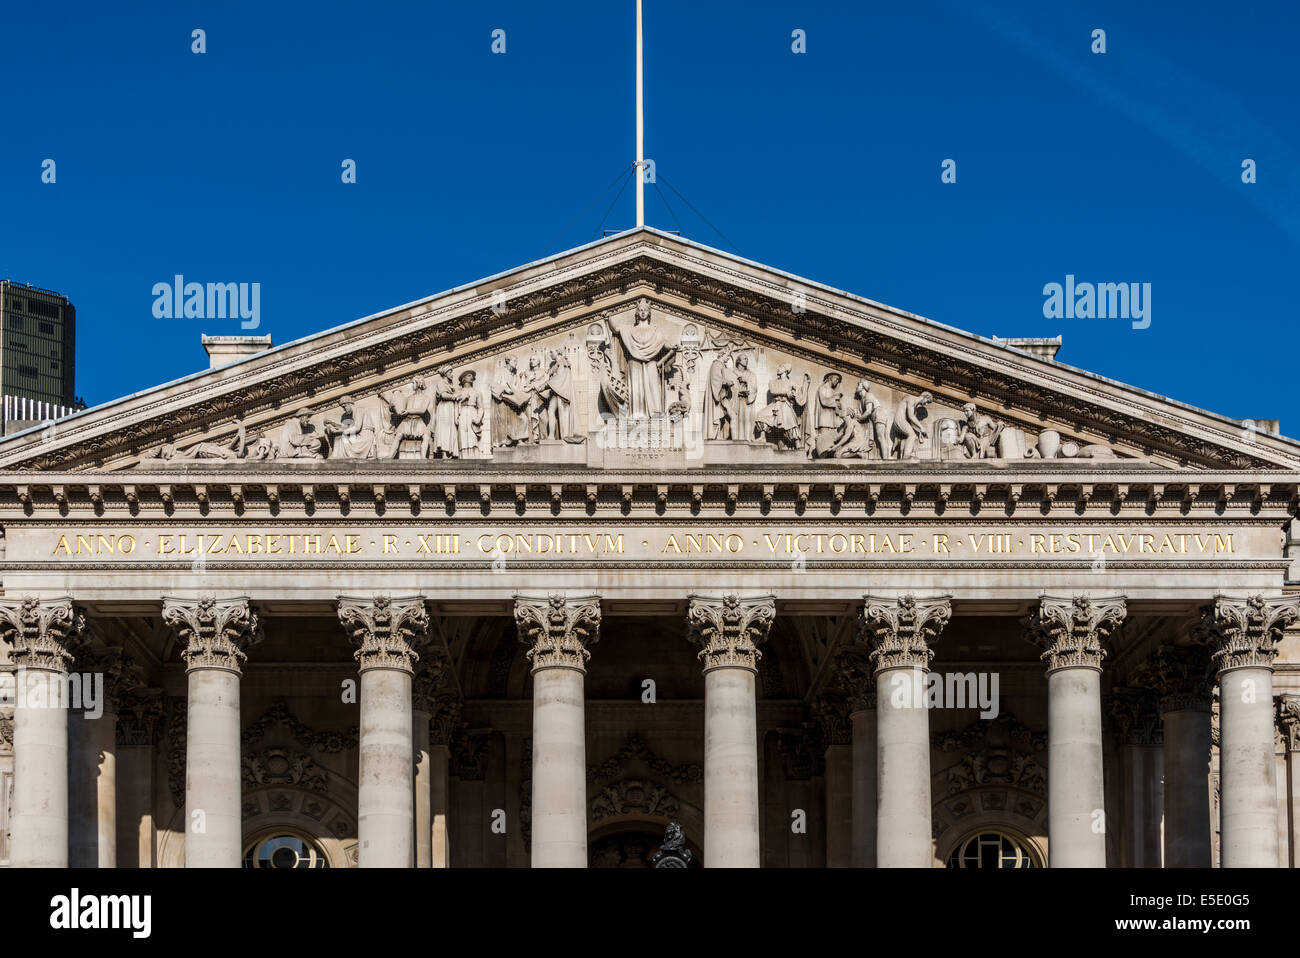 The pediment of the Royal Exchange in the City of London. The front is a portico of eight Corinthian columns - Stock Image